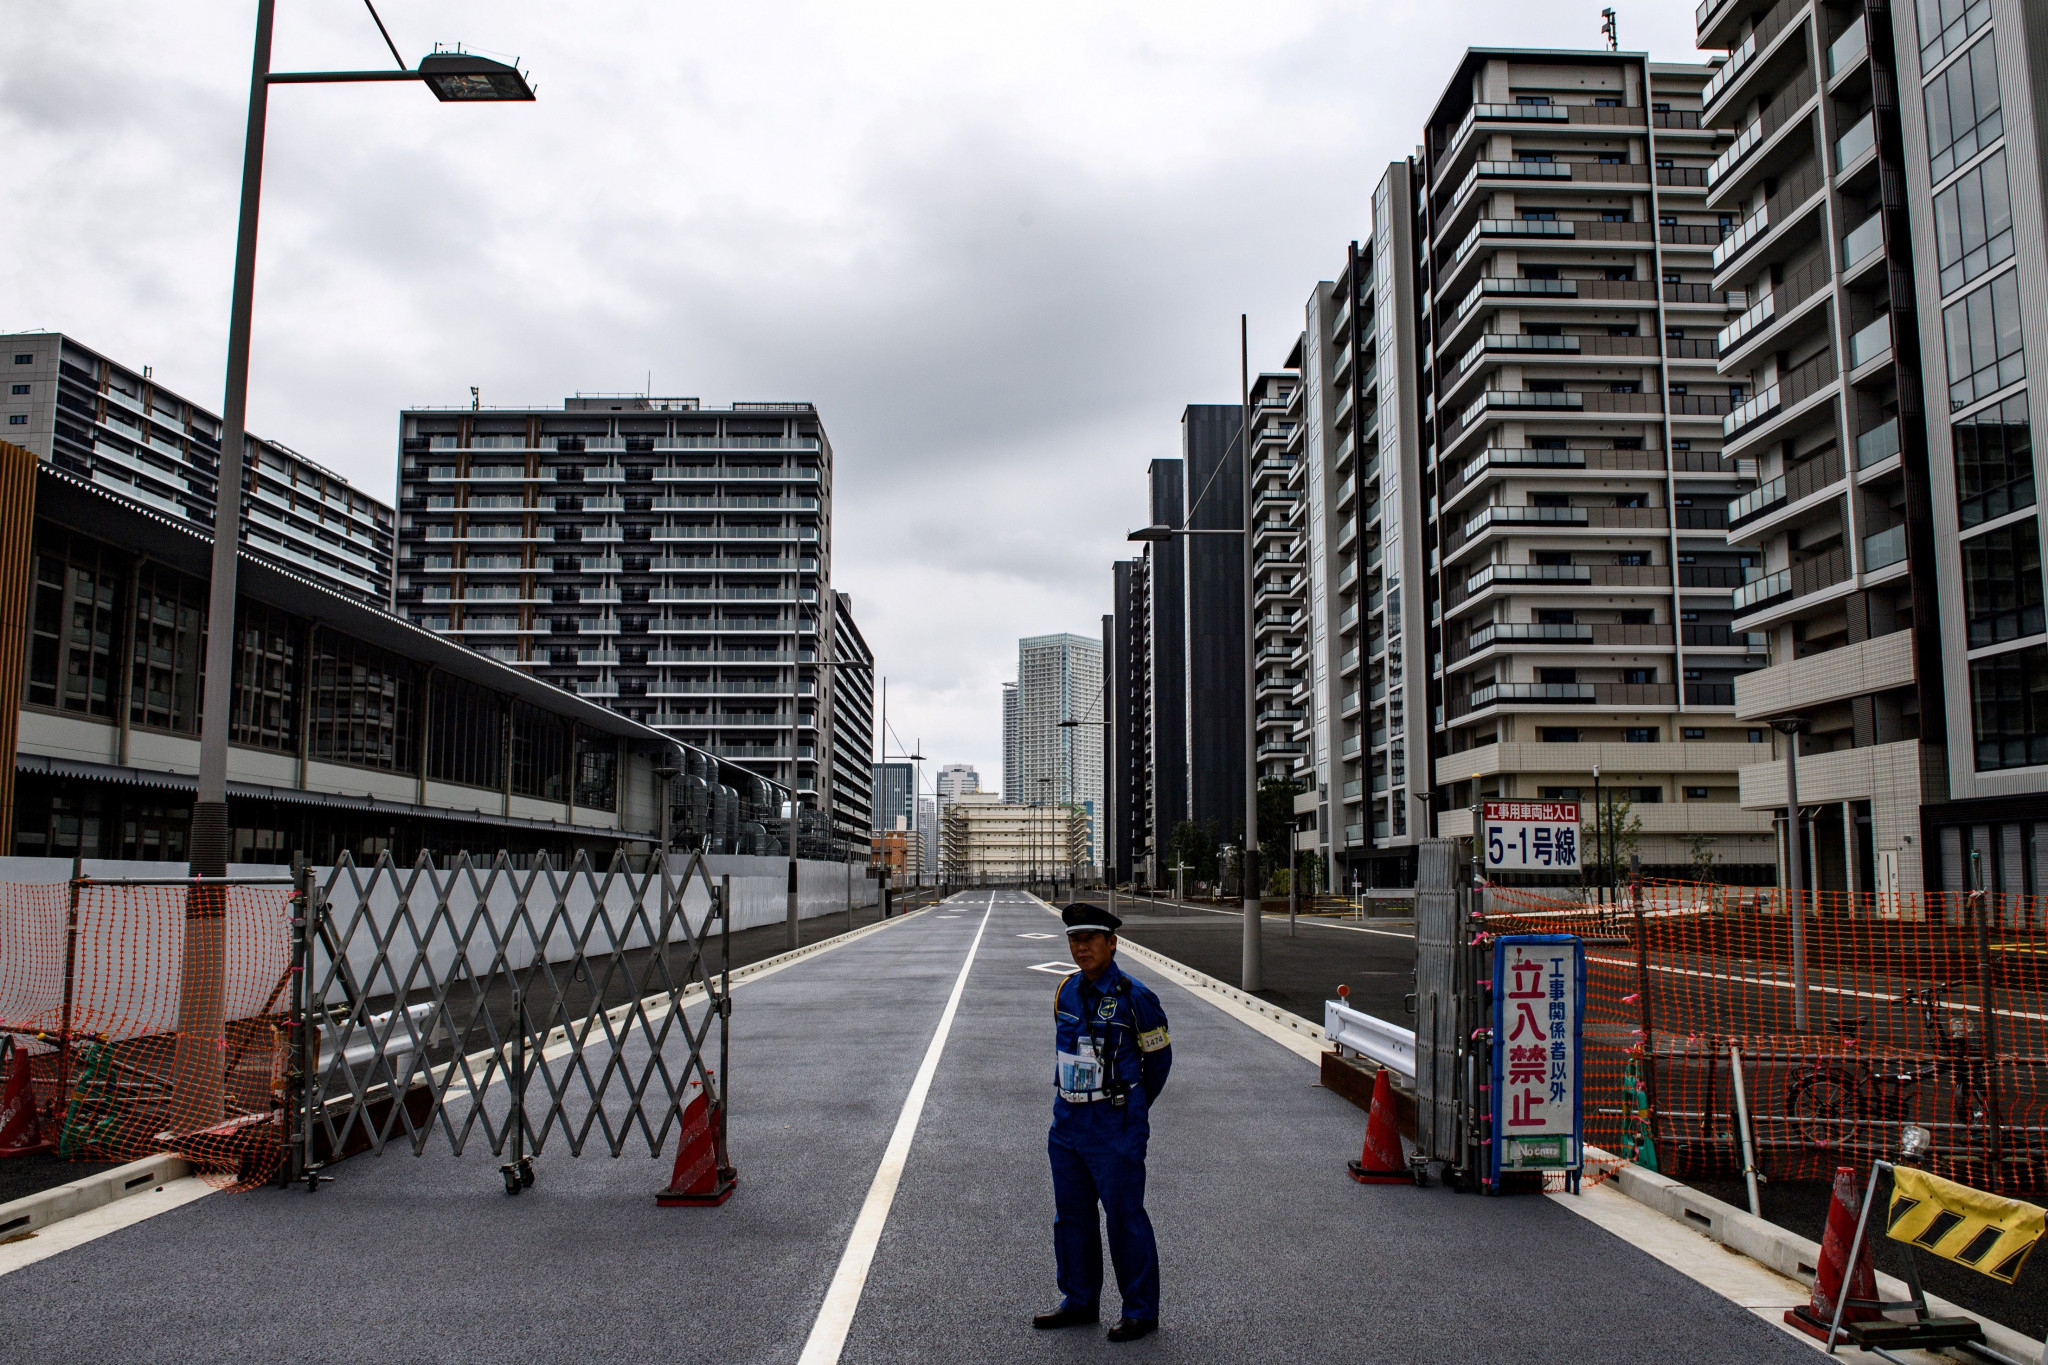 Coates says athletes to be limited to Athletes' Village and venues at Tokyo 2020 and tested every four days